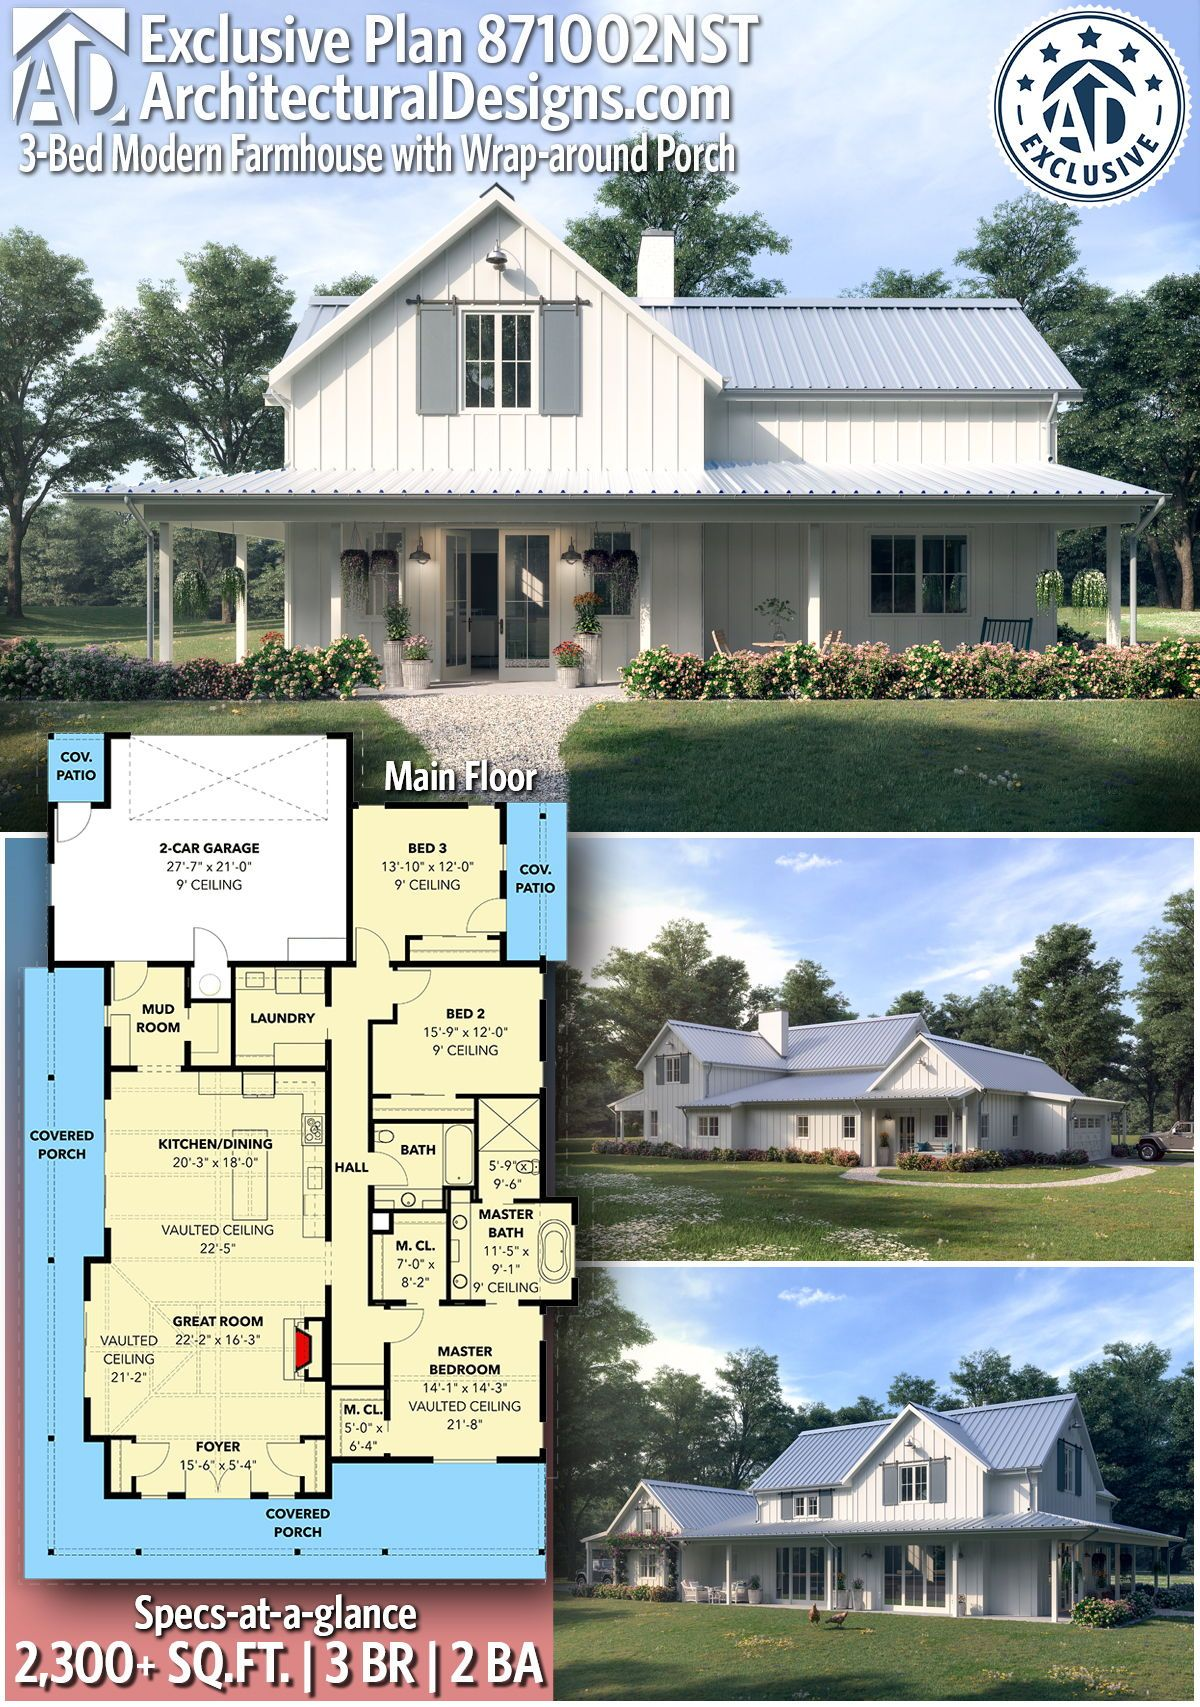 Plan 871002nst 3 Bed Modern Farmhouse With Wrap Around Porch Modern Farmhouse Plans House Plans Farmhouse Barn House Plans